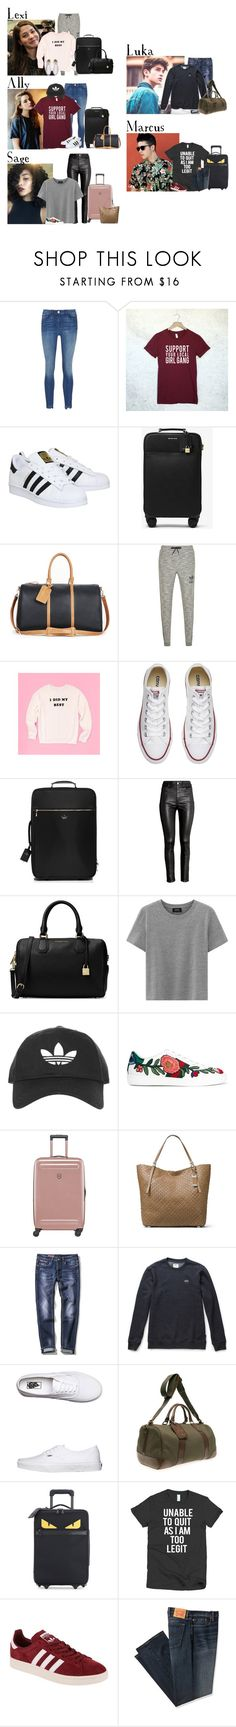 """""""Friday // Hotel Breakfast & Flight Home // 2/24/17"""" by graywolf422 ❤ liked on Polyvore featuring adidas, MICHAEL Michael Kors, Sole Society, adidas Originals, Converse, Kate Spade, H&M, Topshop, Gucci and Victorinox Swiss Army"""